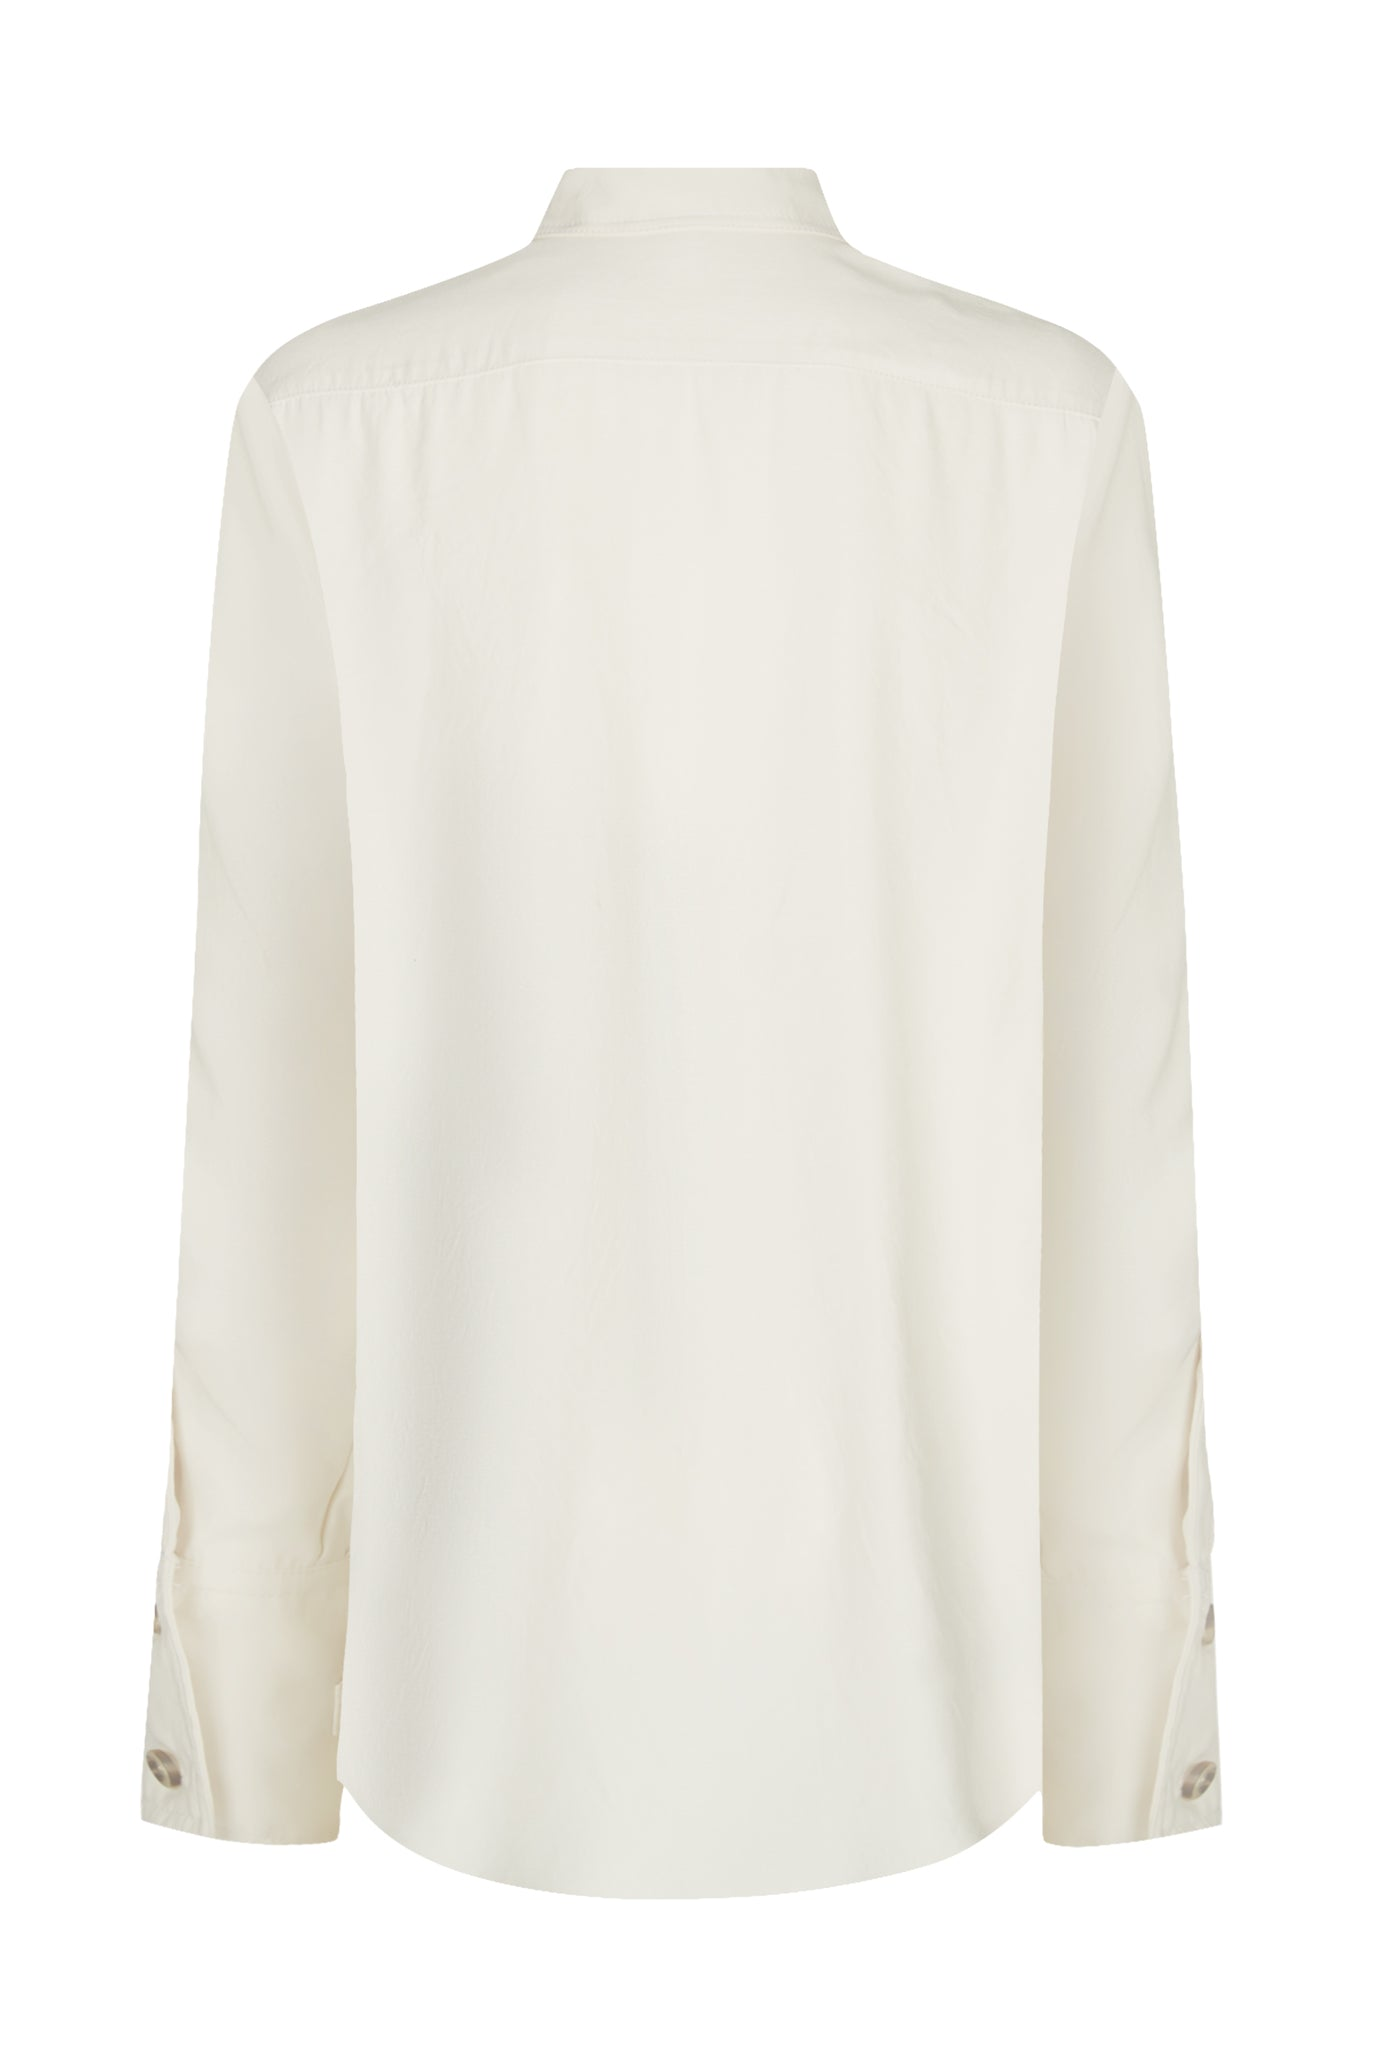 The Pocket Oversized Shirt - Cream Natural Fabric